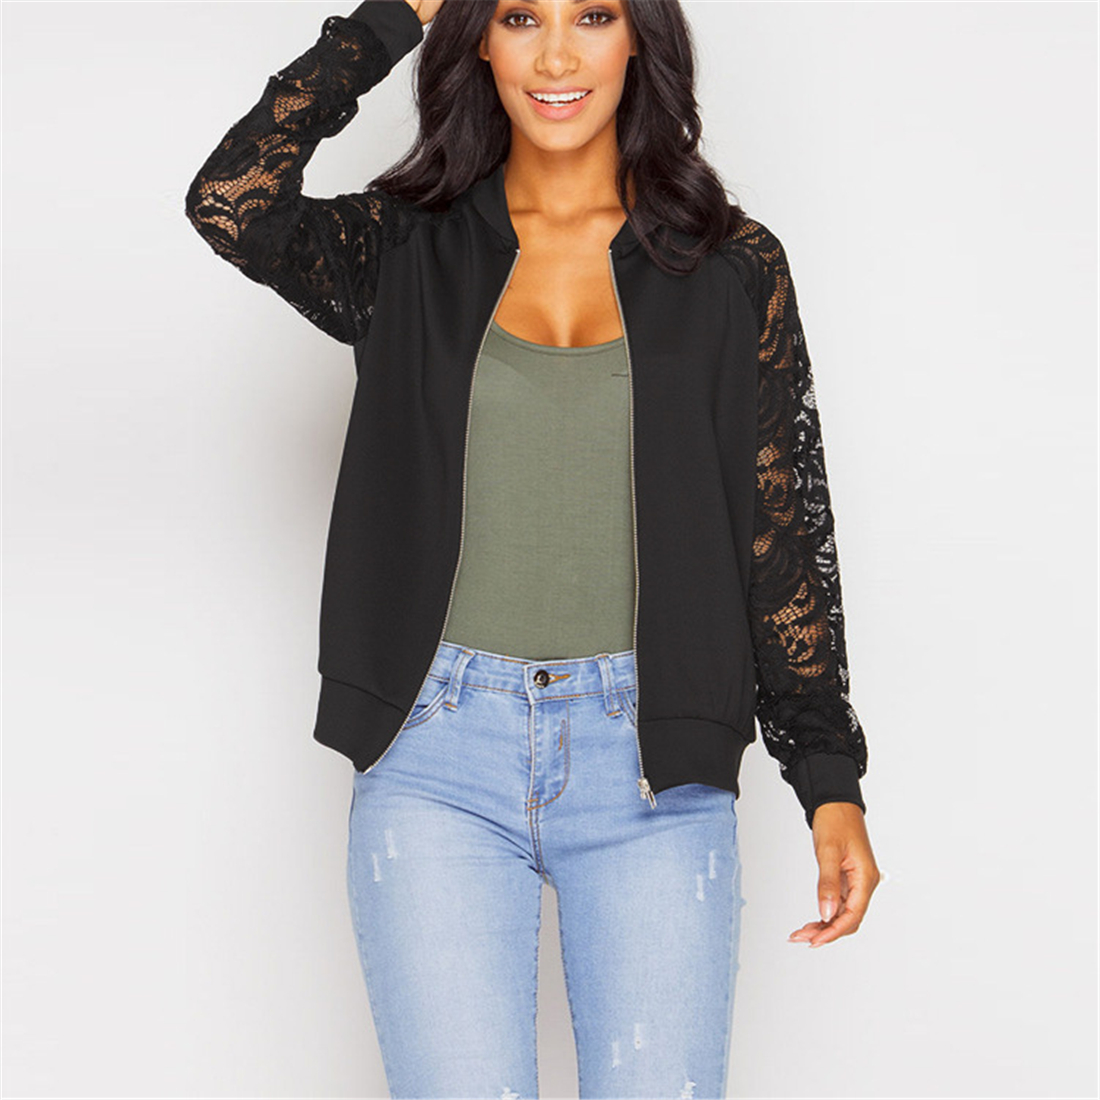 Fashion New Coats Lace Printed Bomber Jackets Women Long Sleeve Zipper Basic Hollow Out 2019 Spring Perspective Short Coat